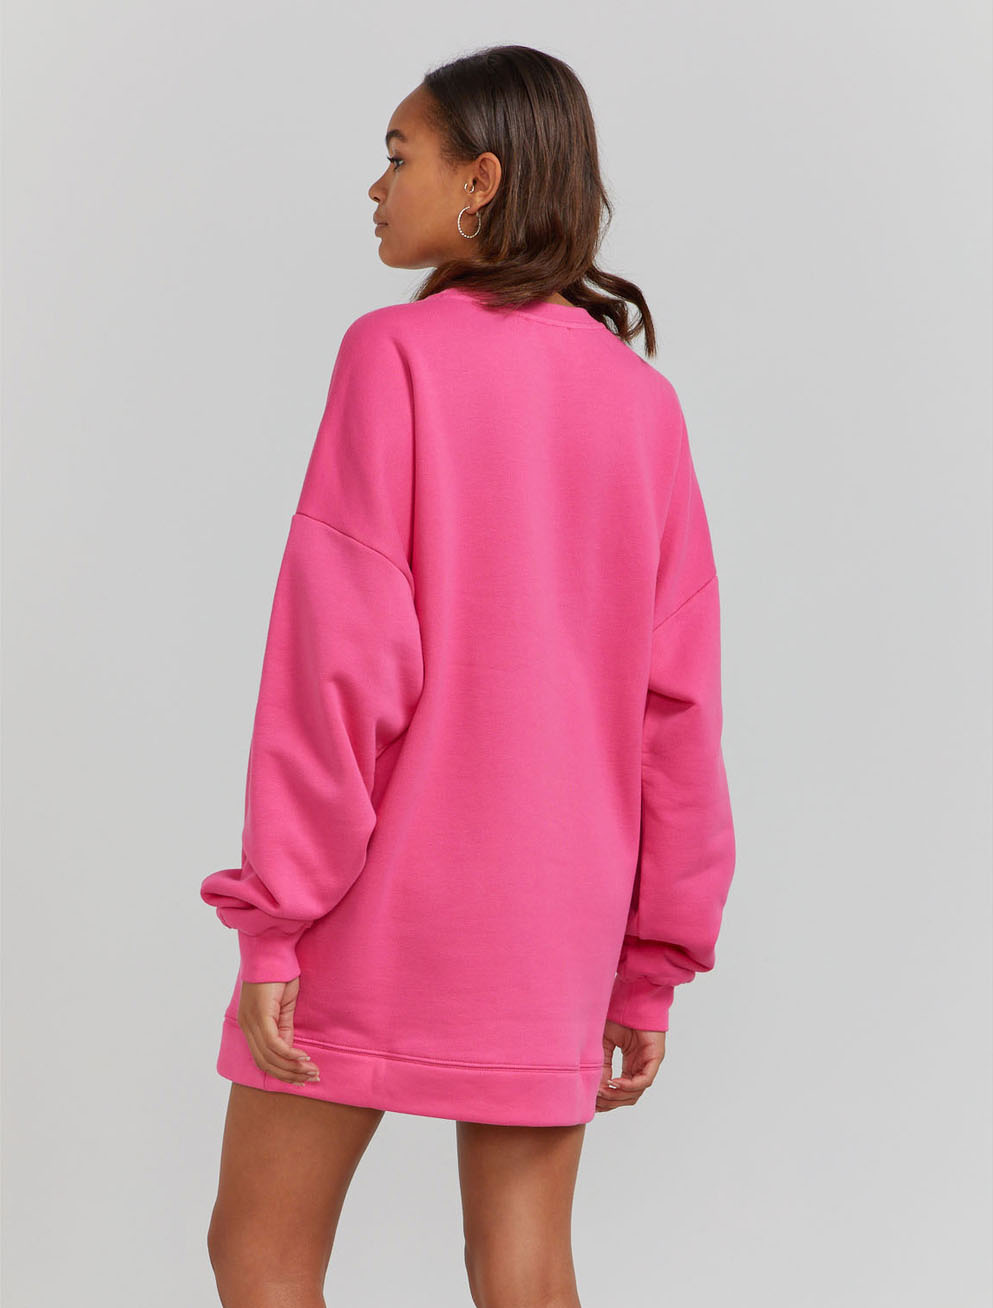 Organic cotton jumbo sweatshirt